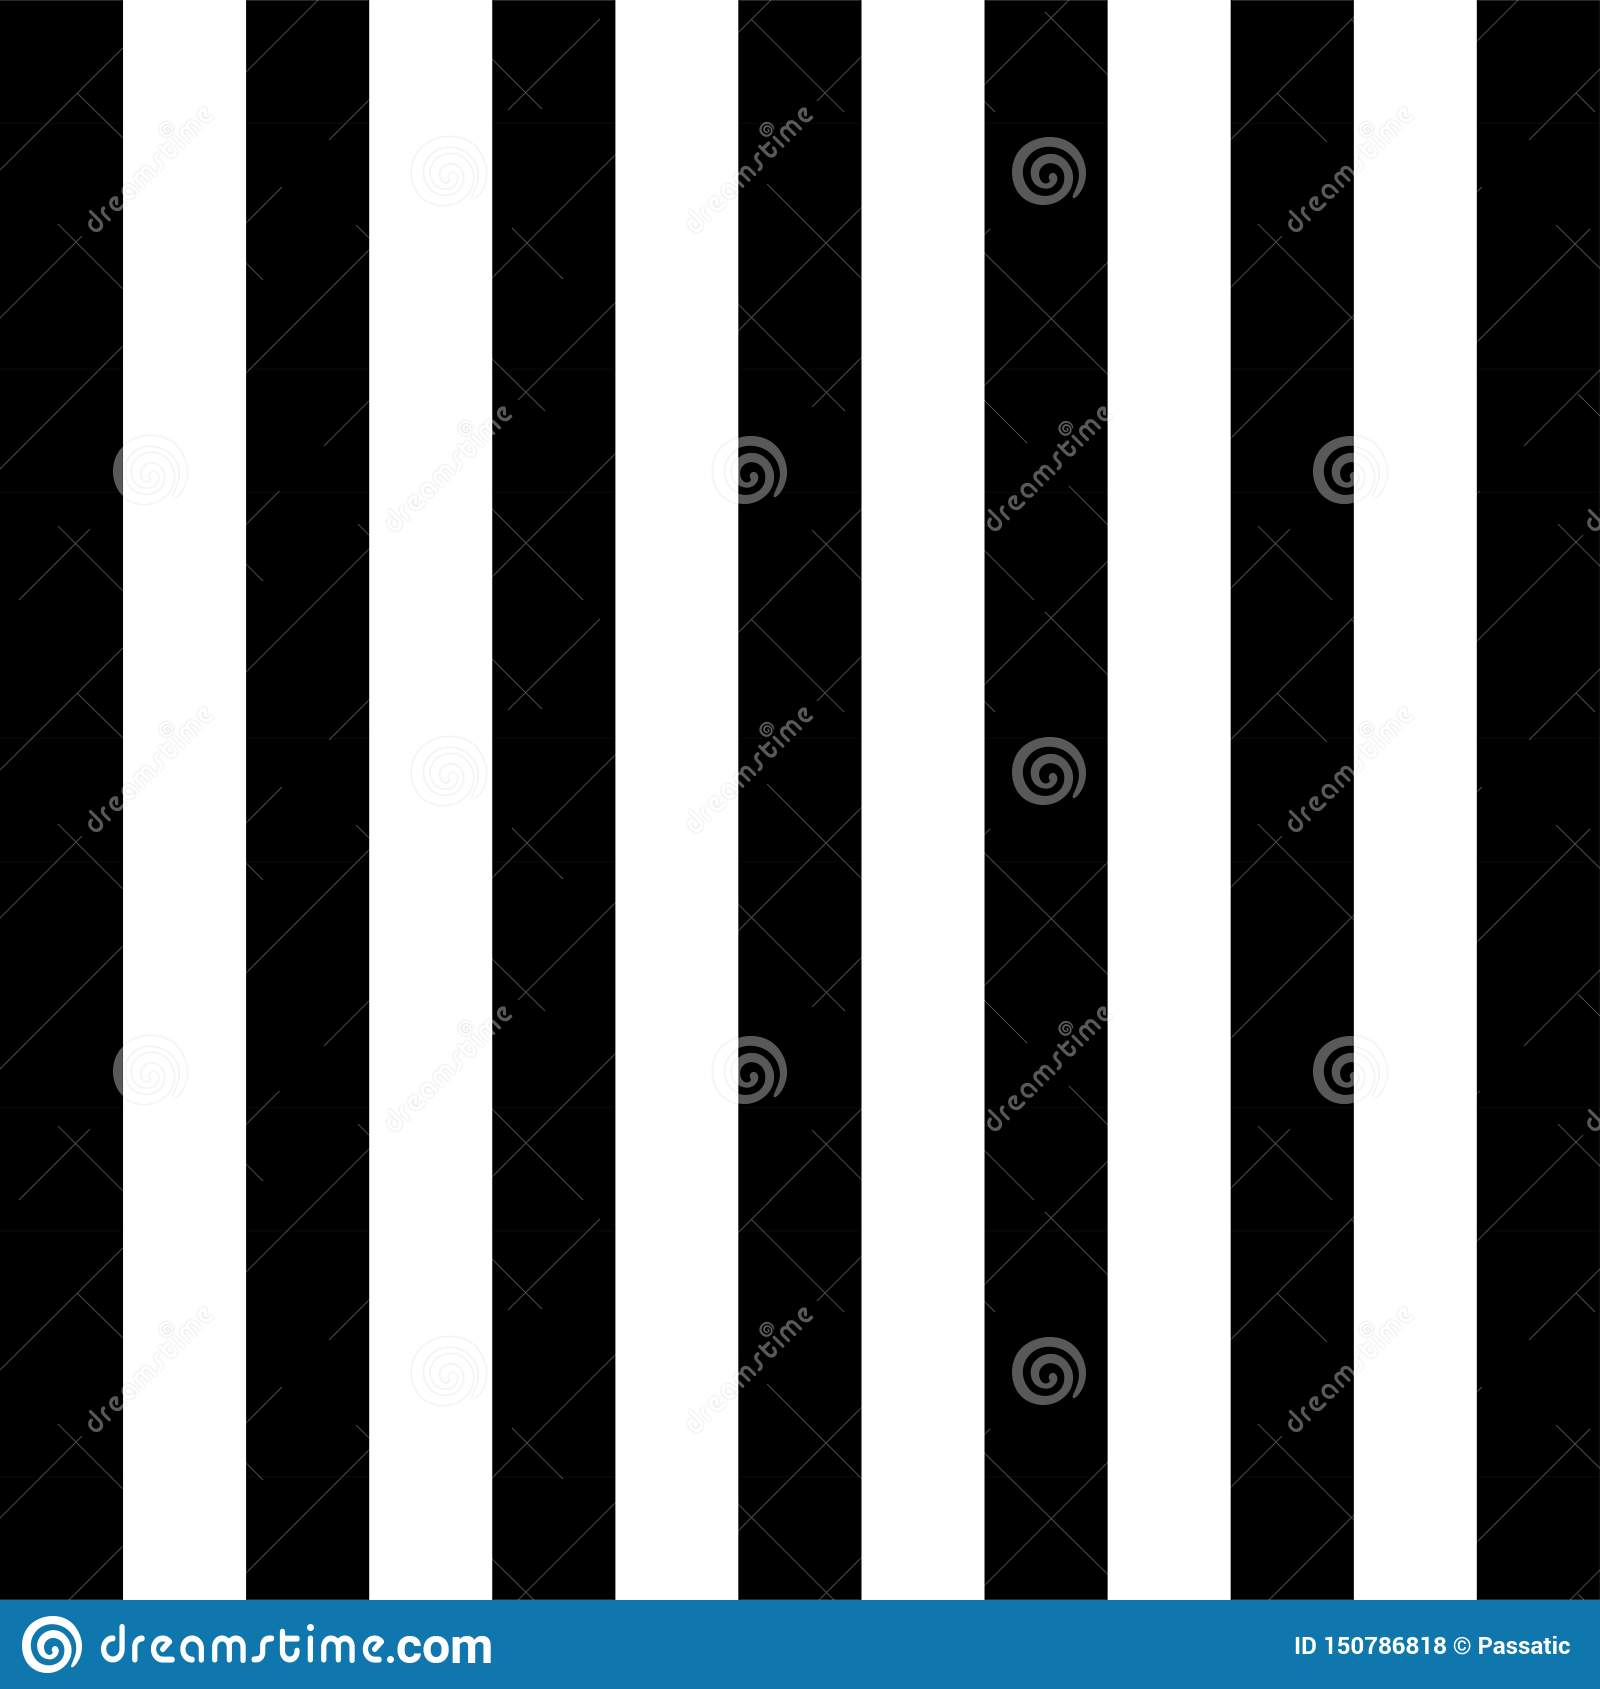 Black and white pattern for classic background